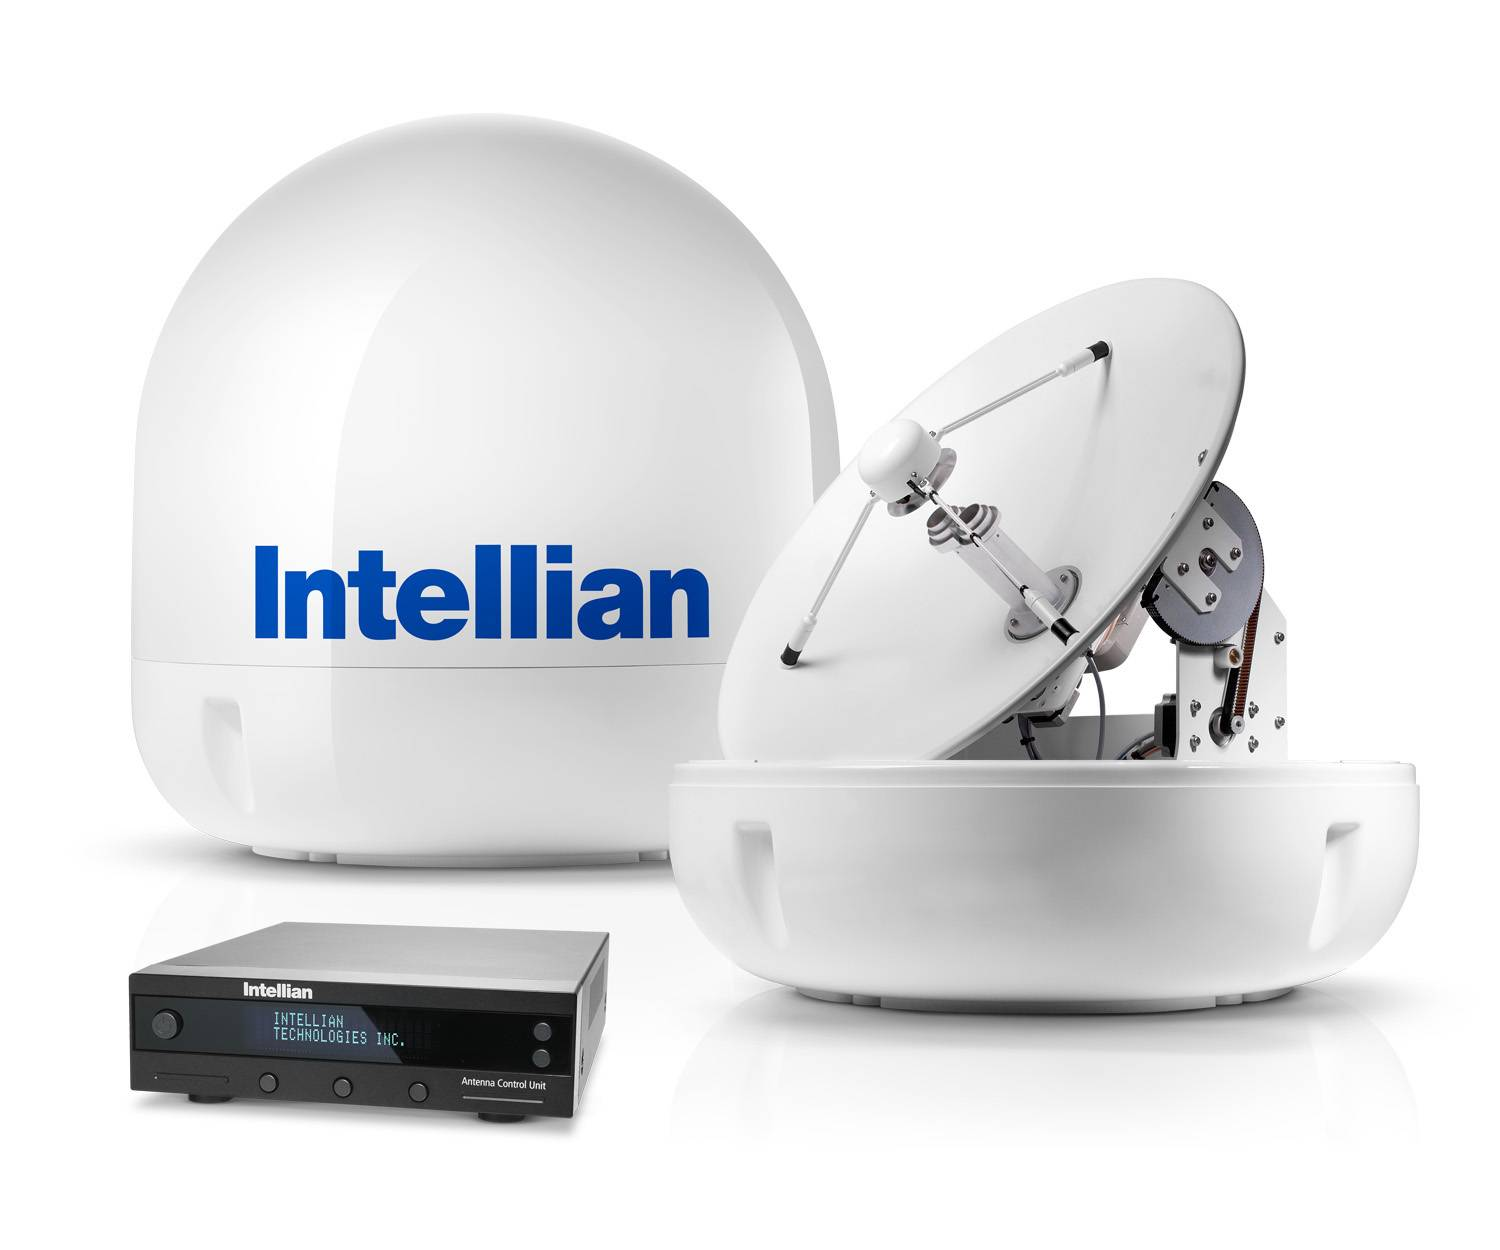 File Photo: Intellian